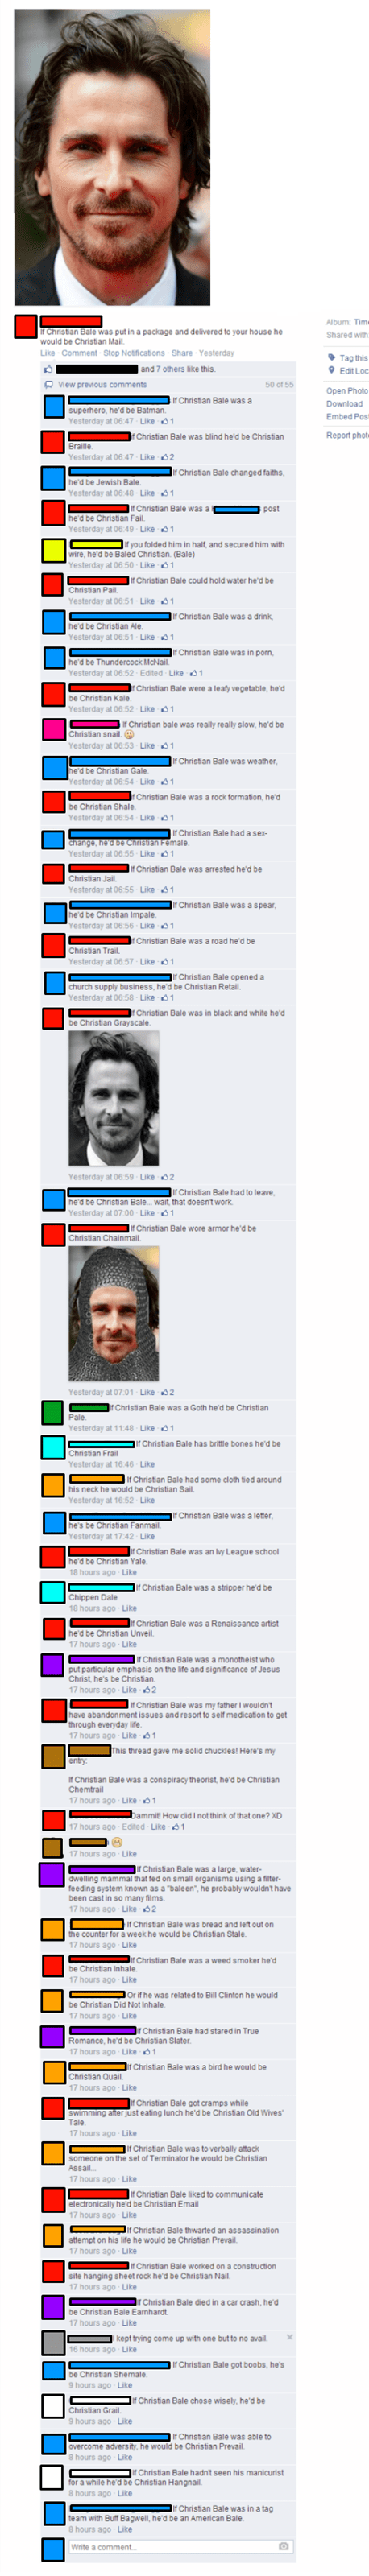 Will The Real Christian Bale Please Stand Up?